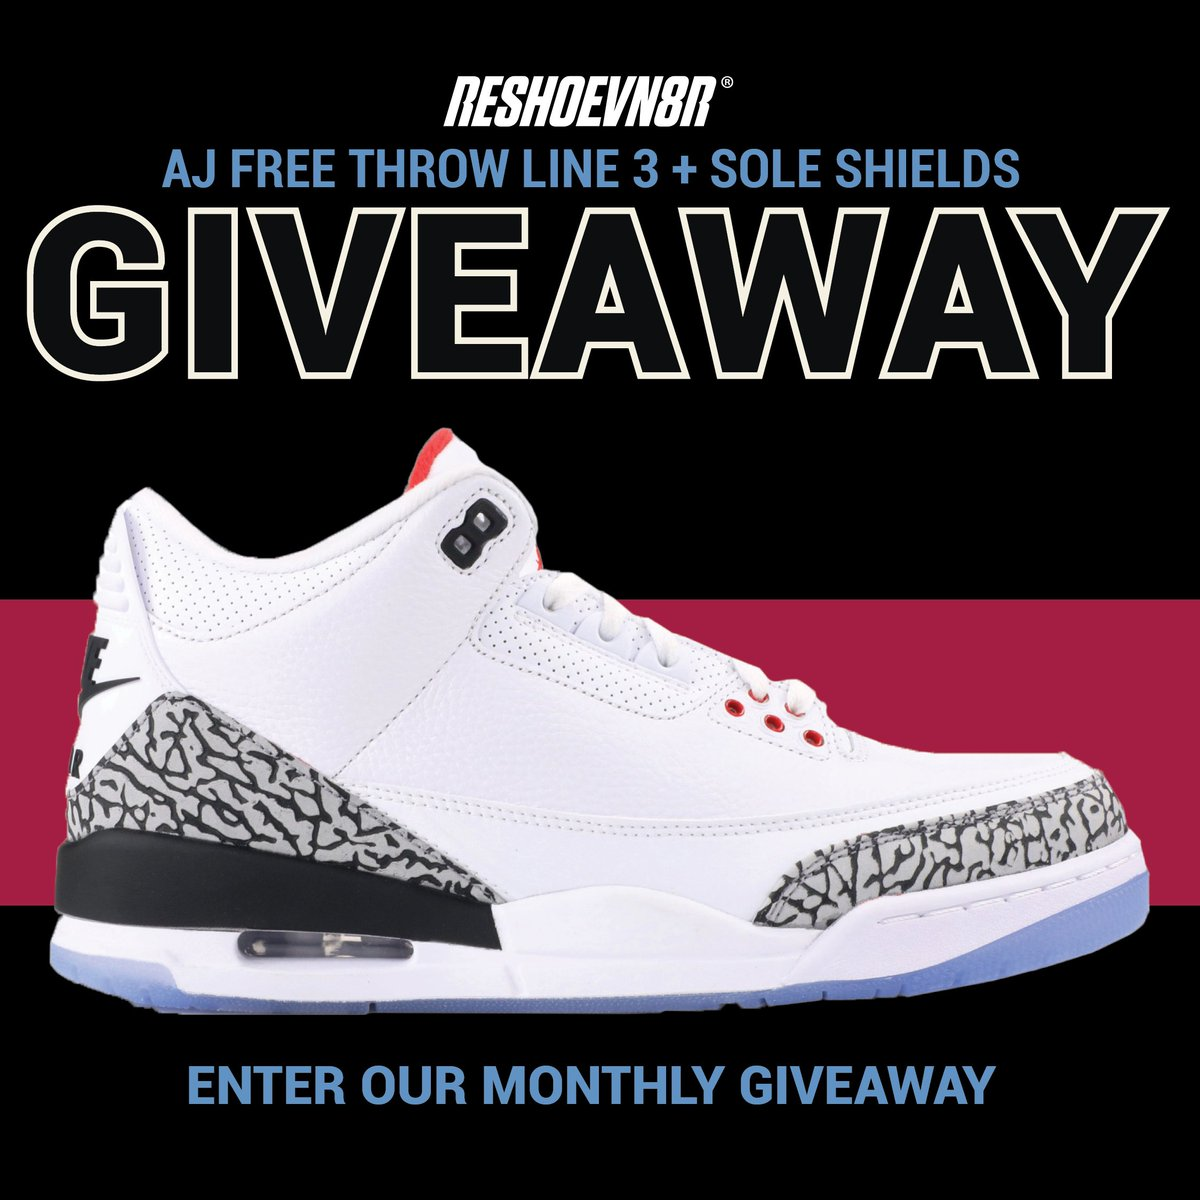 New month! New giveaway! In May, we are giving away a pair of AJ Free Throw Line 3s and a Pack of Sole Shields! Retweet this tweet for an extra entry! https://reshoevn8r.com/pages/giveaway